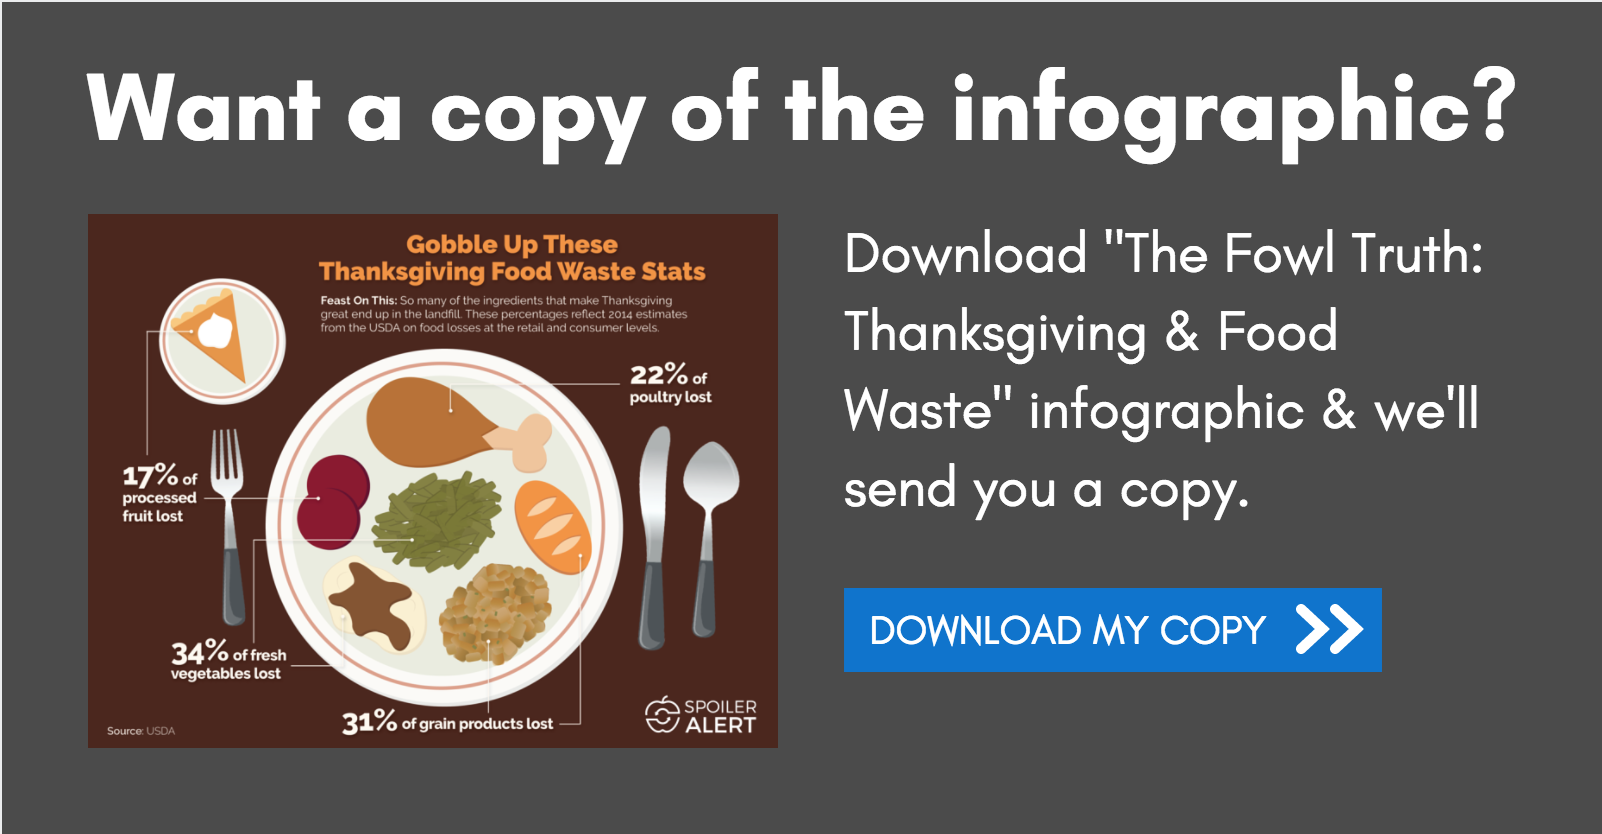 Download Our Thanksgiving & Food Waste Infographic